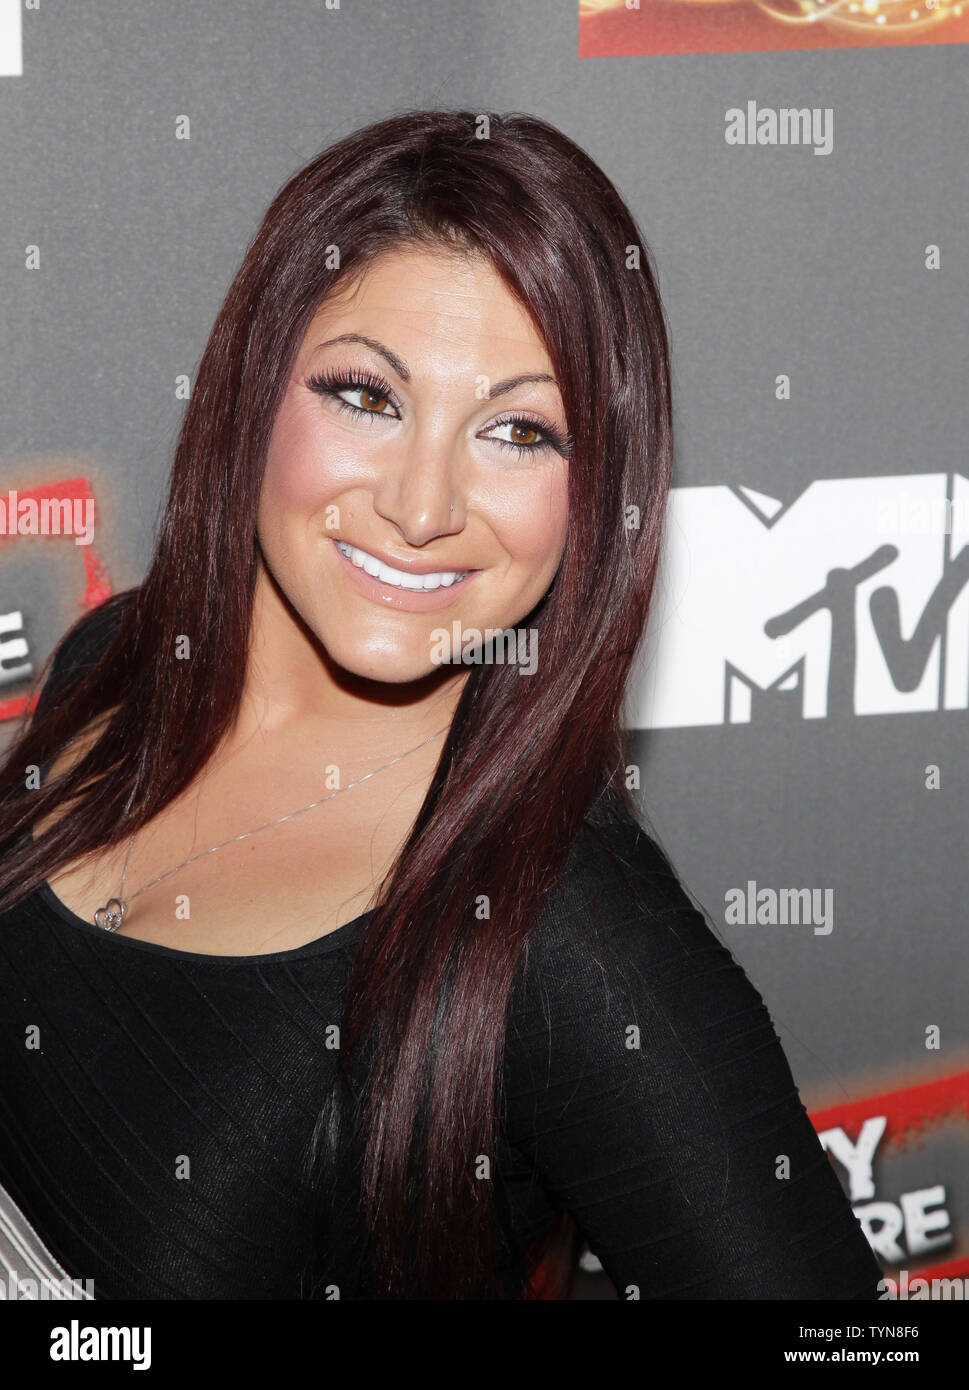 Deena Nicole Cortese arrives on the red carpet for the 'Jersey Shore' Final Season Premiere at Bagatelle in New York City on October 4, 2012.       UPI/John Angelillo Stock Photo